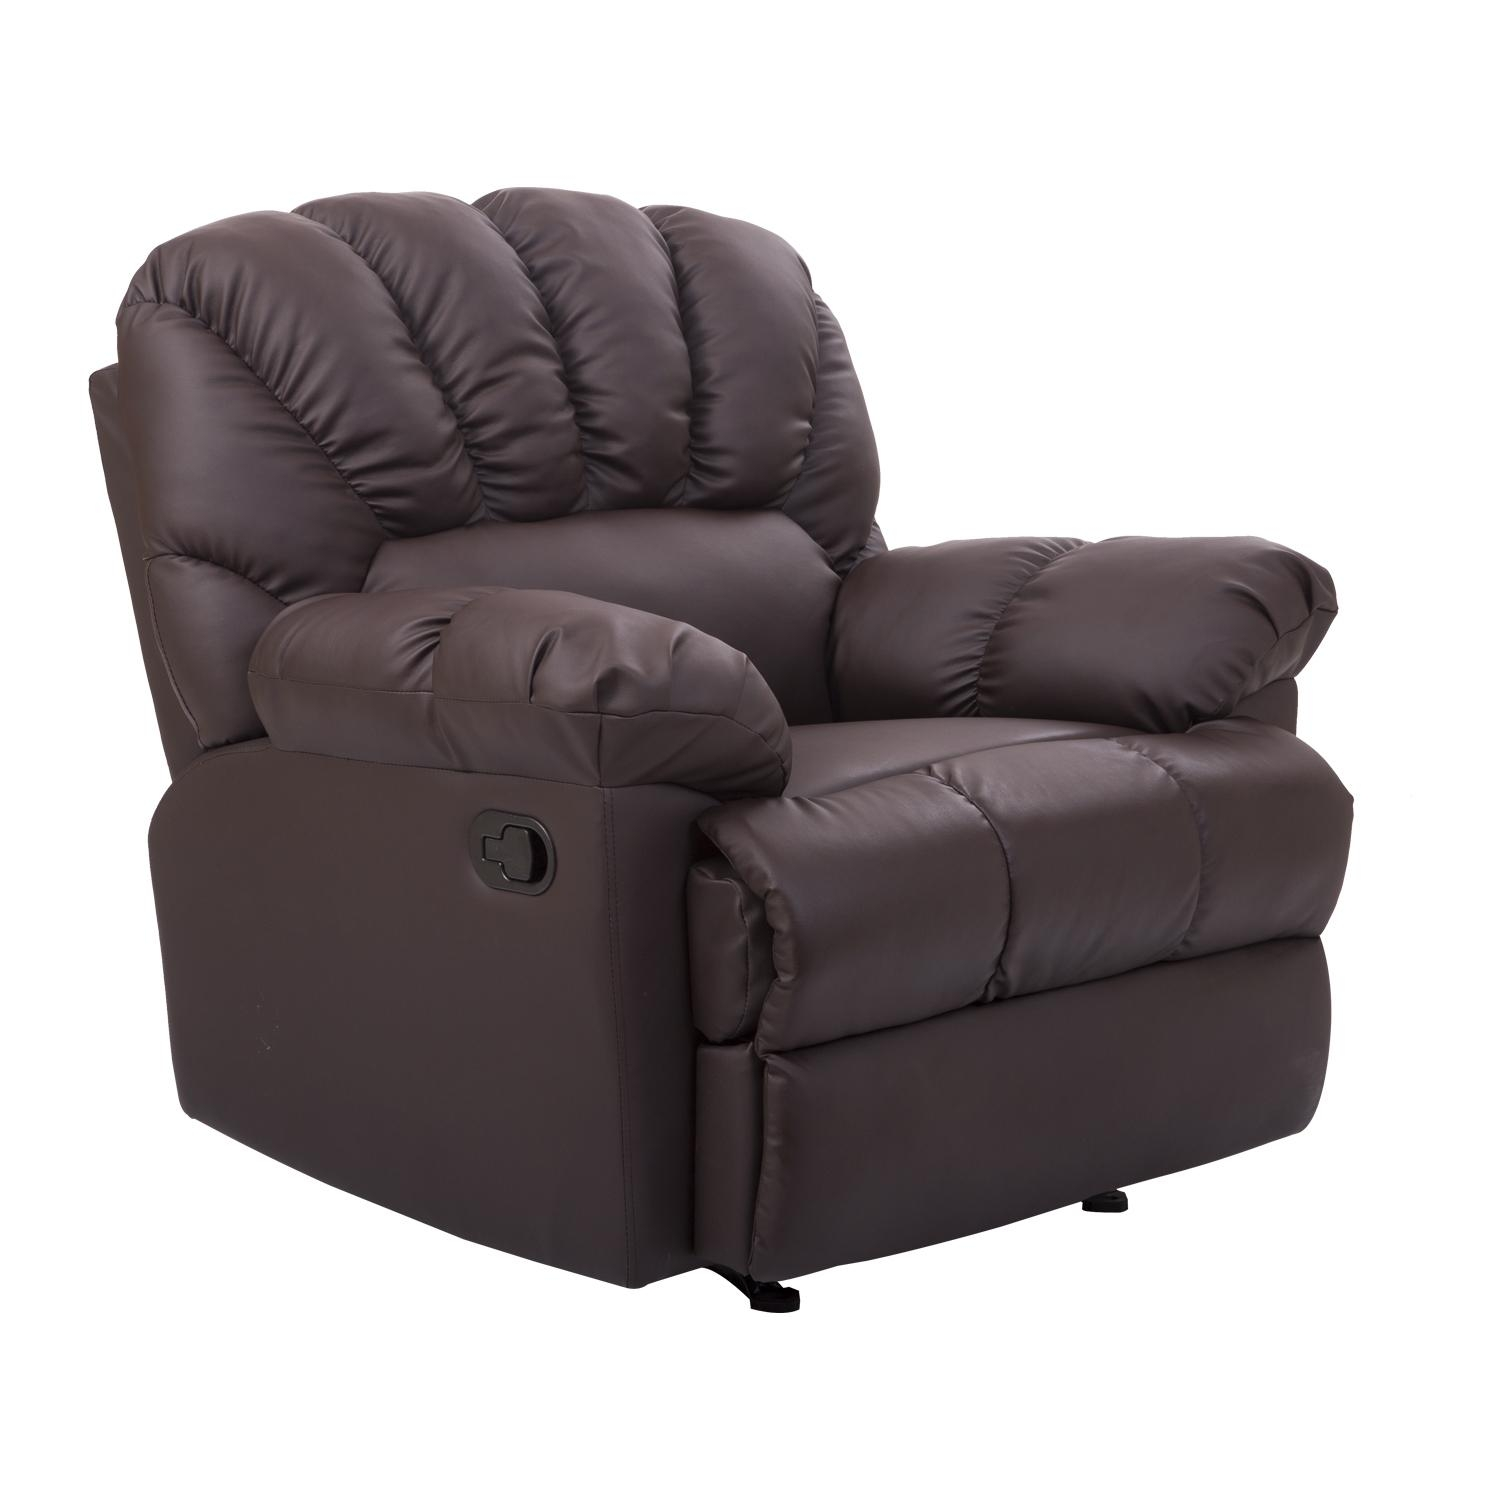 Homcom Pu Leather Rocking Sofa Chair Recliner – Cream – Walmart Intended For Rocking Sofa Chairs (Image 8 of 20)